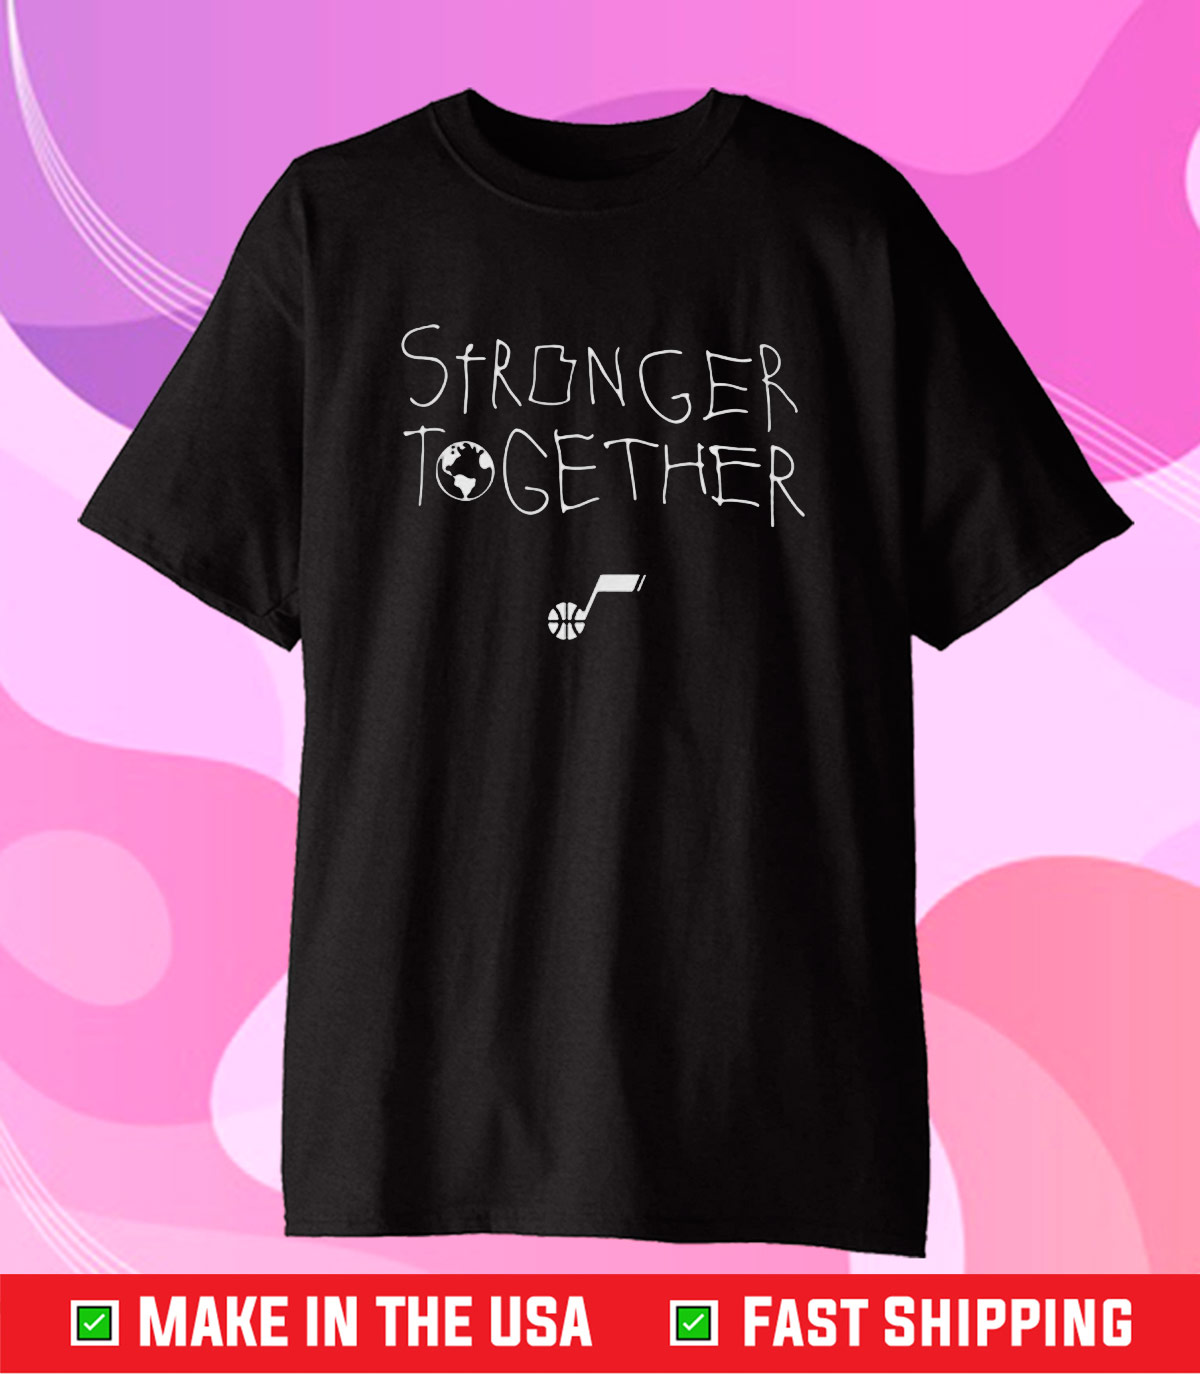 Utah Jazz Jazz Team Store 21 Stronger Together Bhm Classic T-Shirt